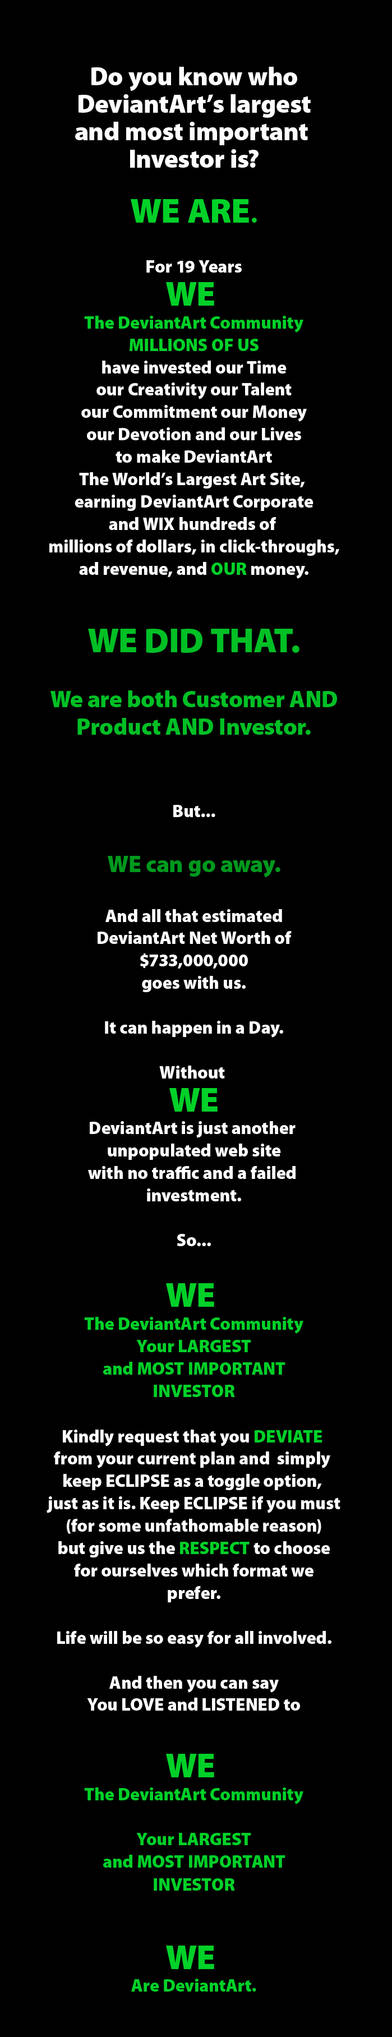 WE Are DeviantArt!